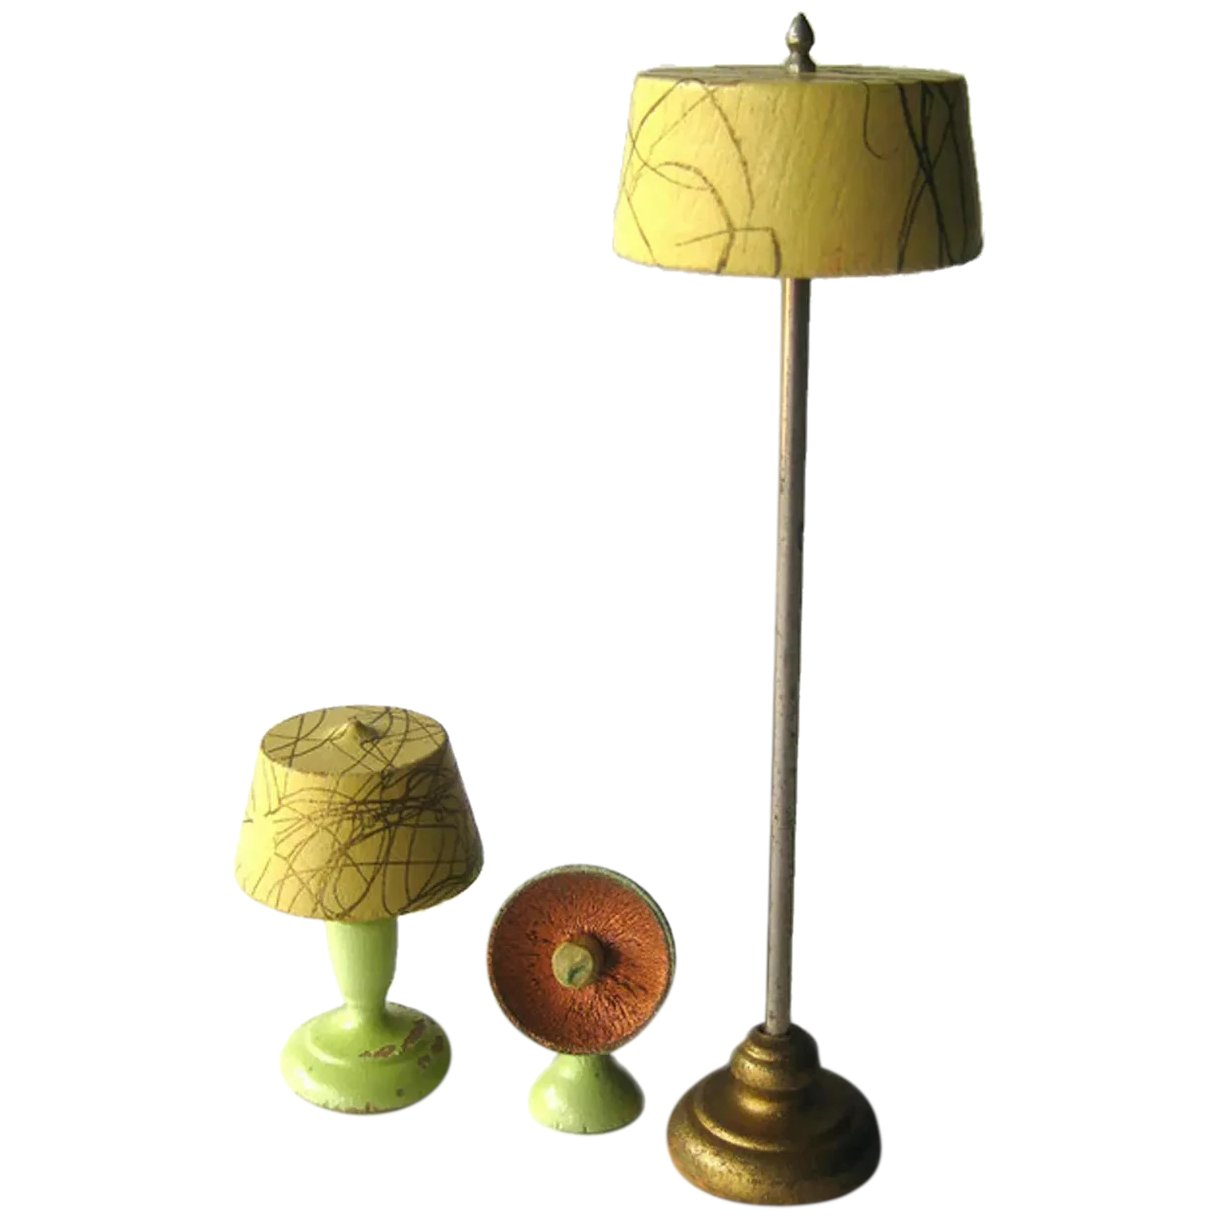 Strombecker Lamp Set Dollhouse Furniture Miniature Livingroom Lamps